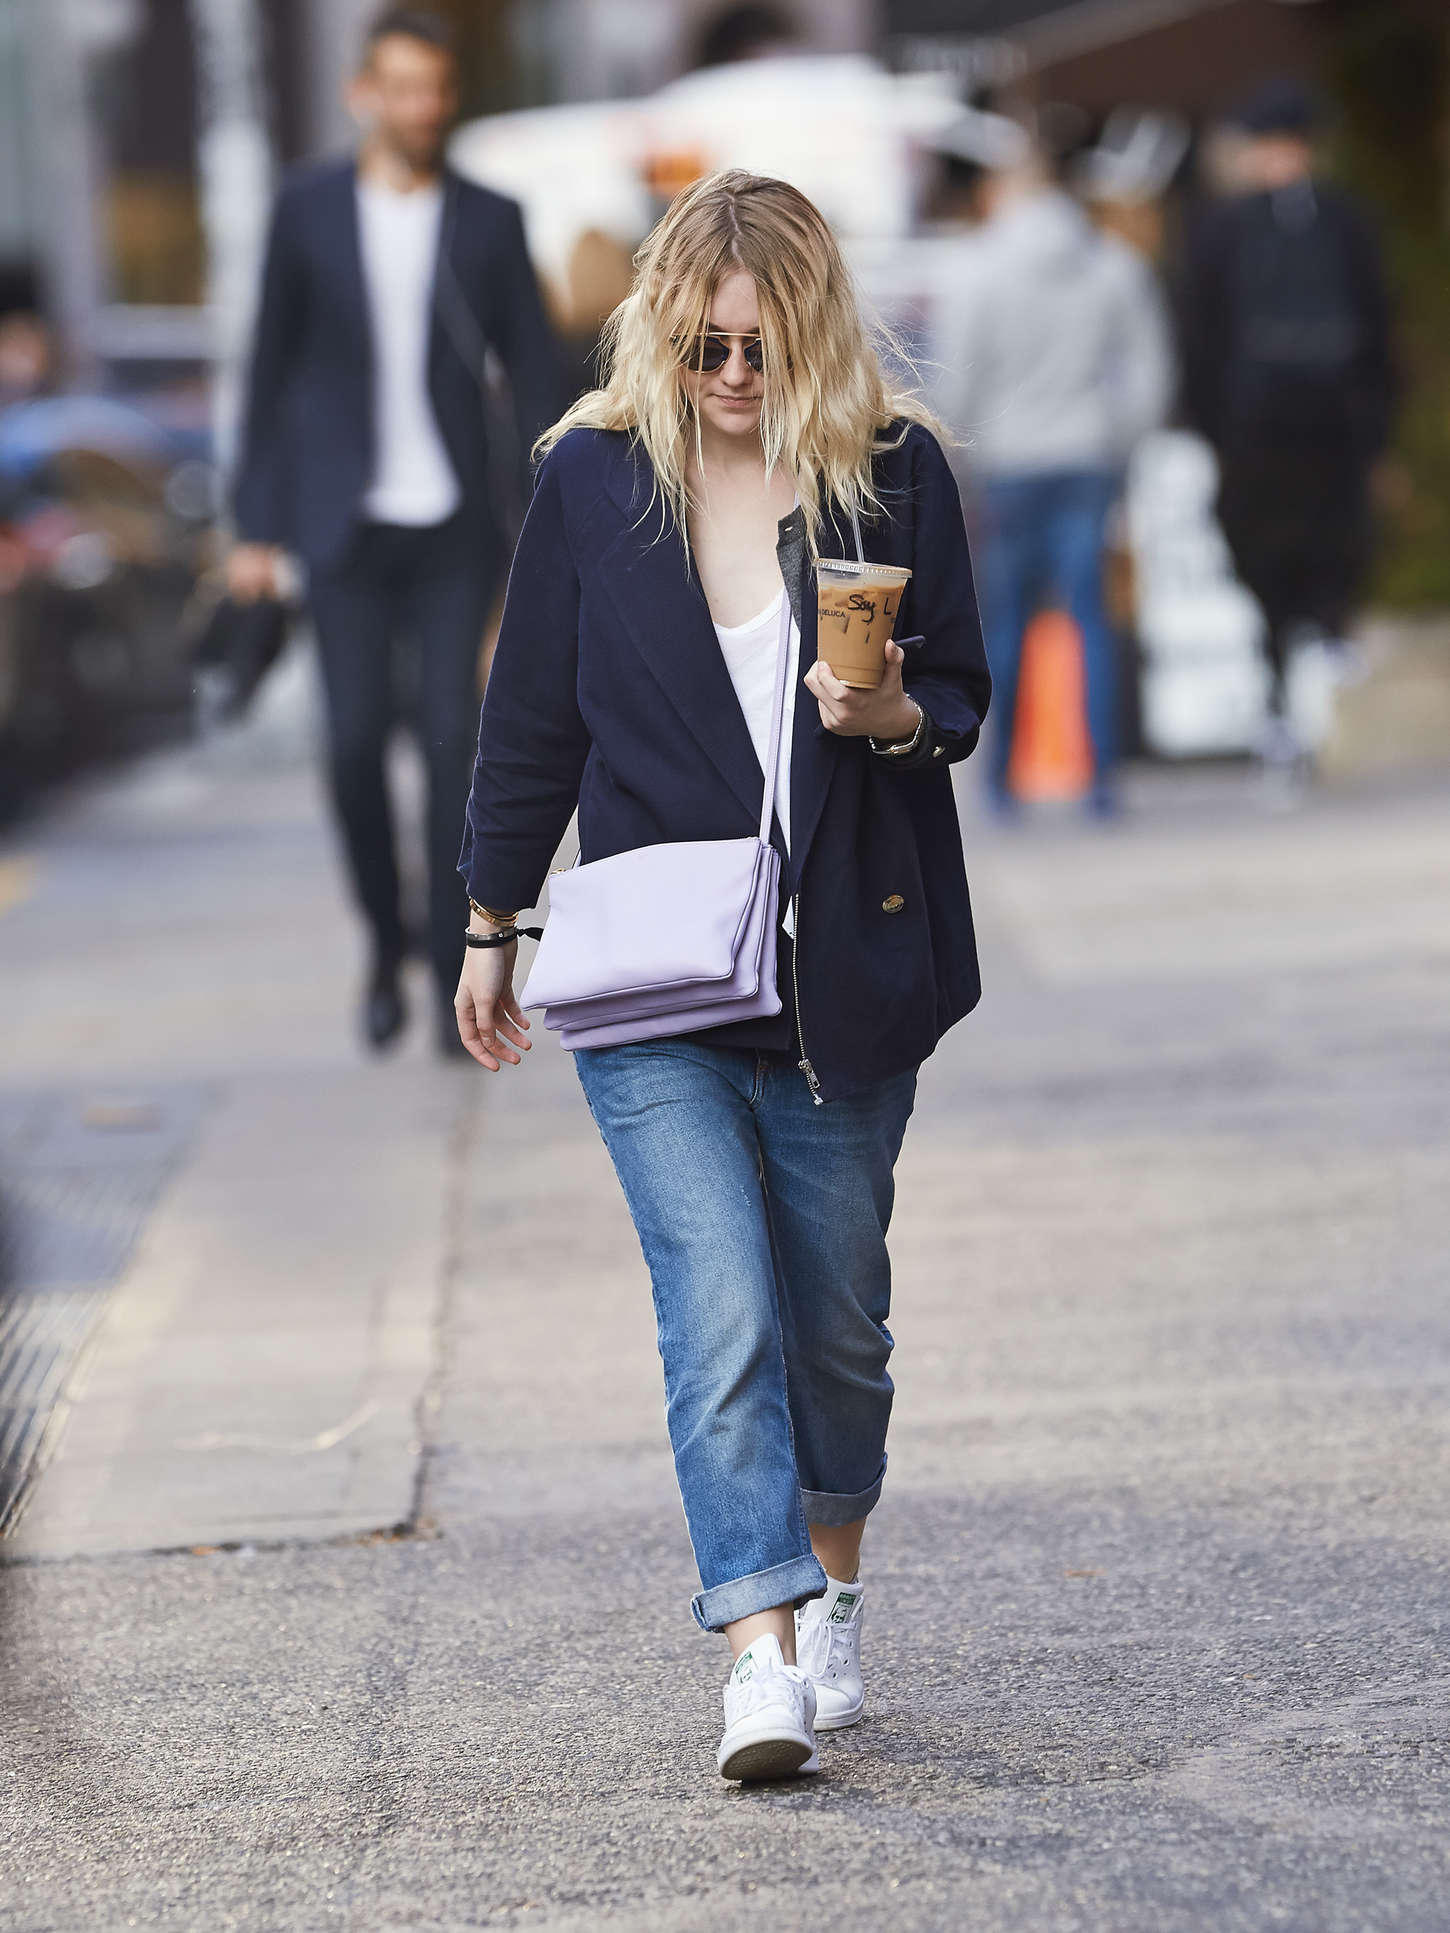 Dakota Fanning 2014 : Dakota Fanning in Jeans -02